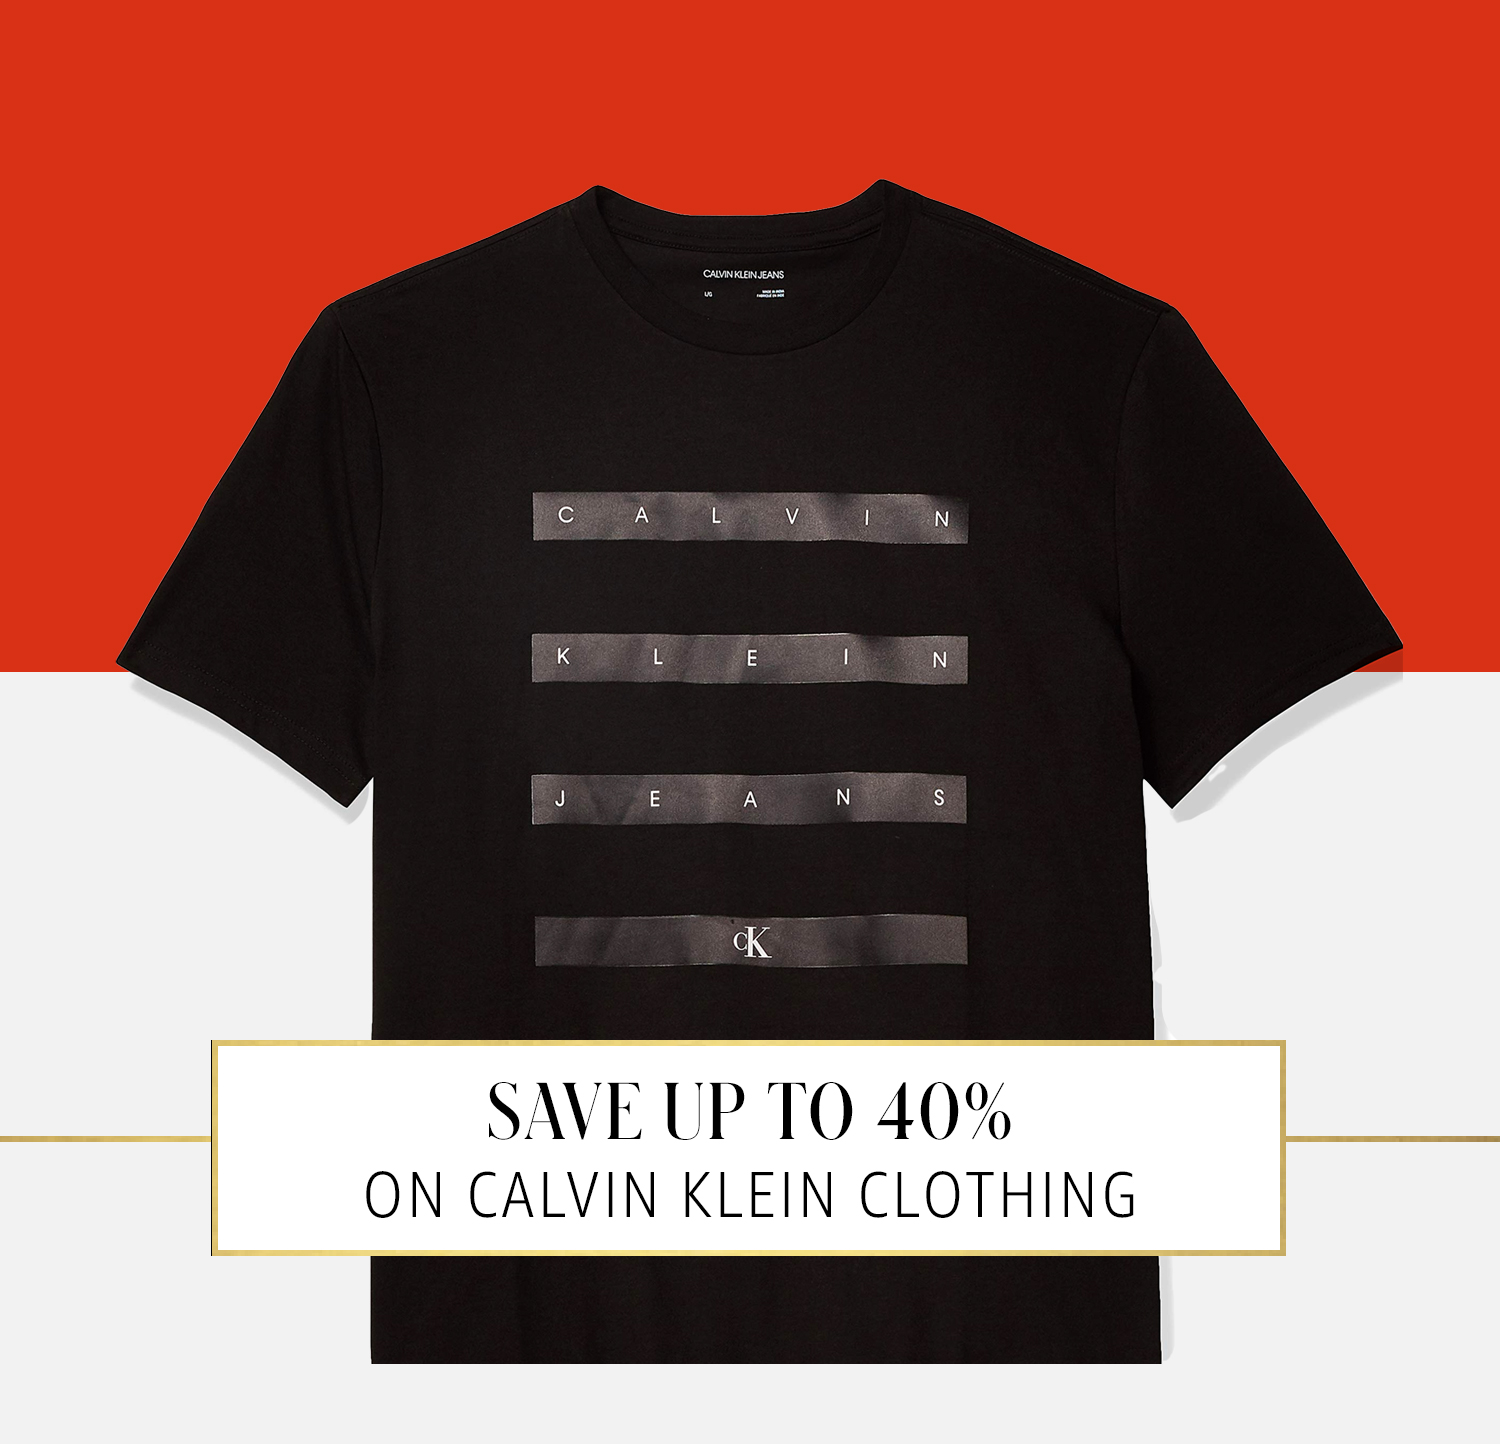 Up to 40% off apparel from Calvin Klein